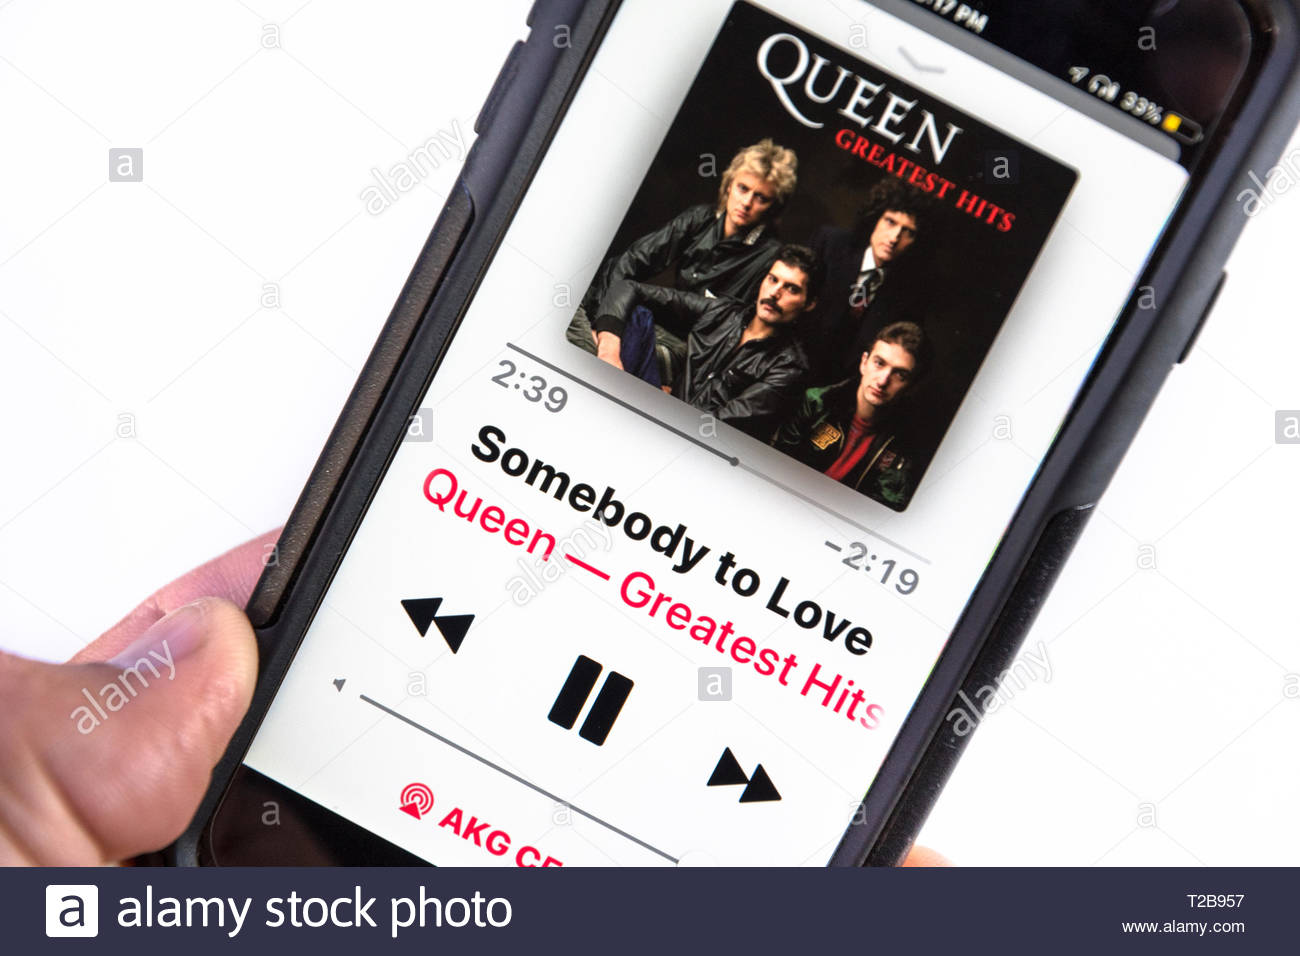 Listening Queen music on a smartphone. The screen shows 'Somebody to Love' and the cover of the album 'Greatest Hits' - Stock Image